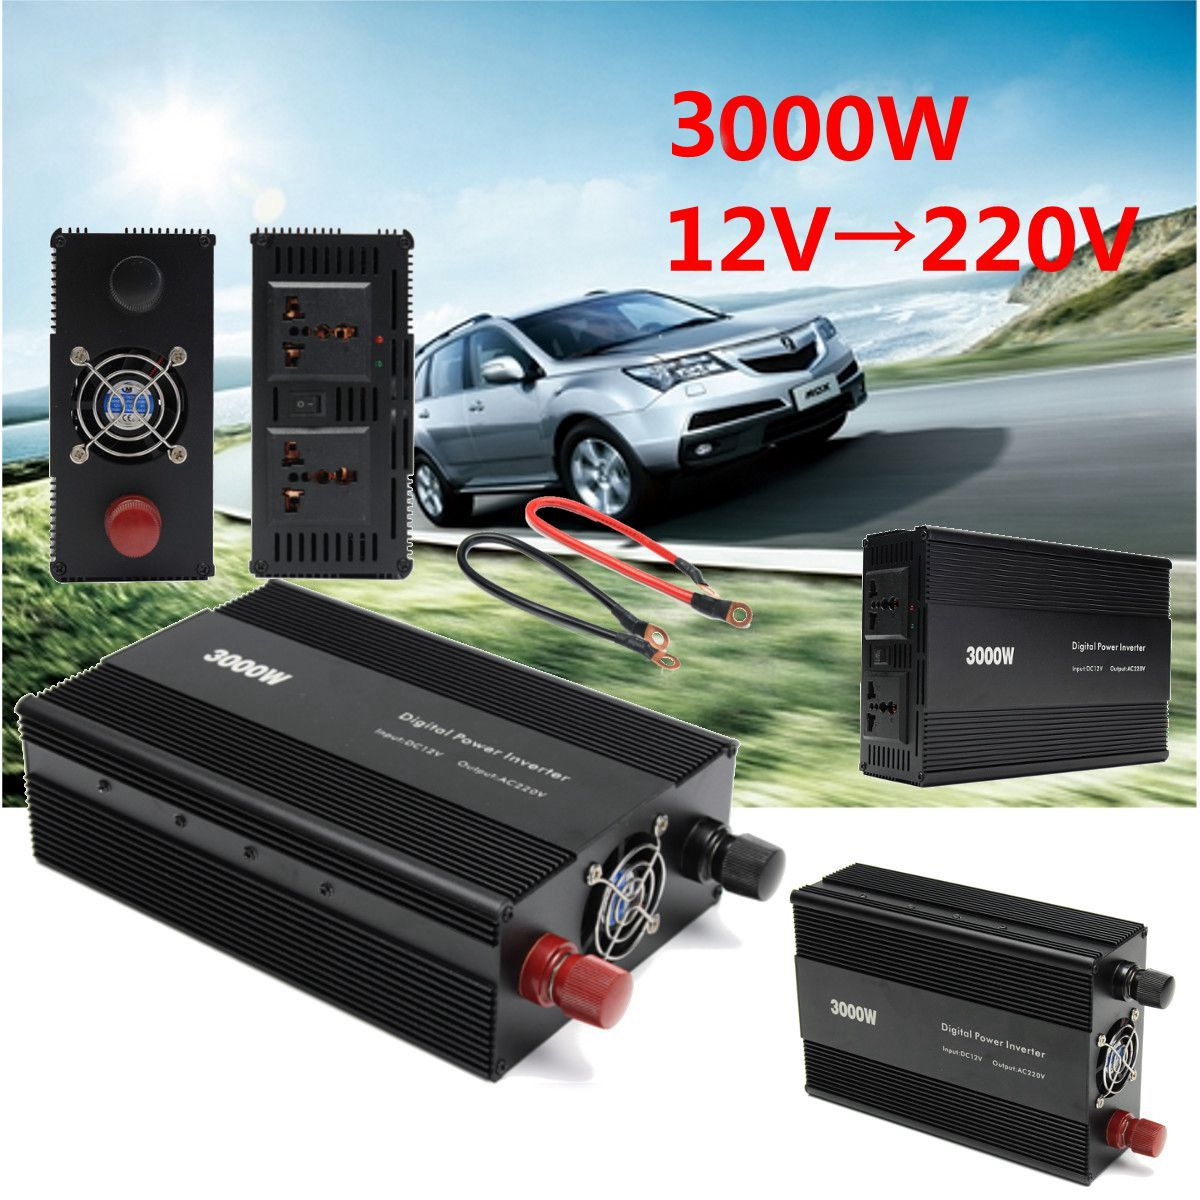 цена на Power Inverter 12V 220V/110V 3000W Peak- 6000W Voltage transformer DC 12V To AC 220V /110V Adapter Charger Modified Sine Wave